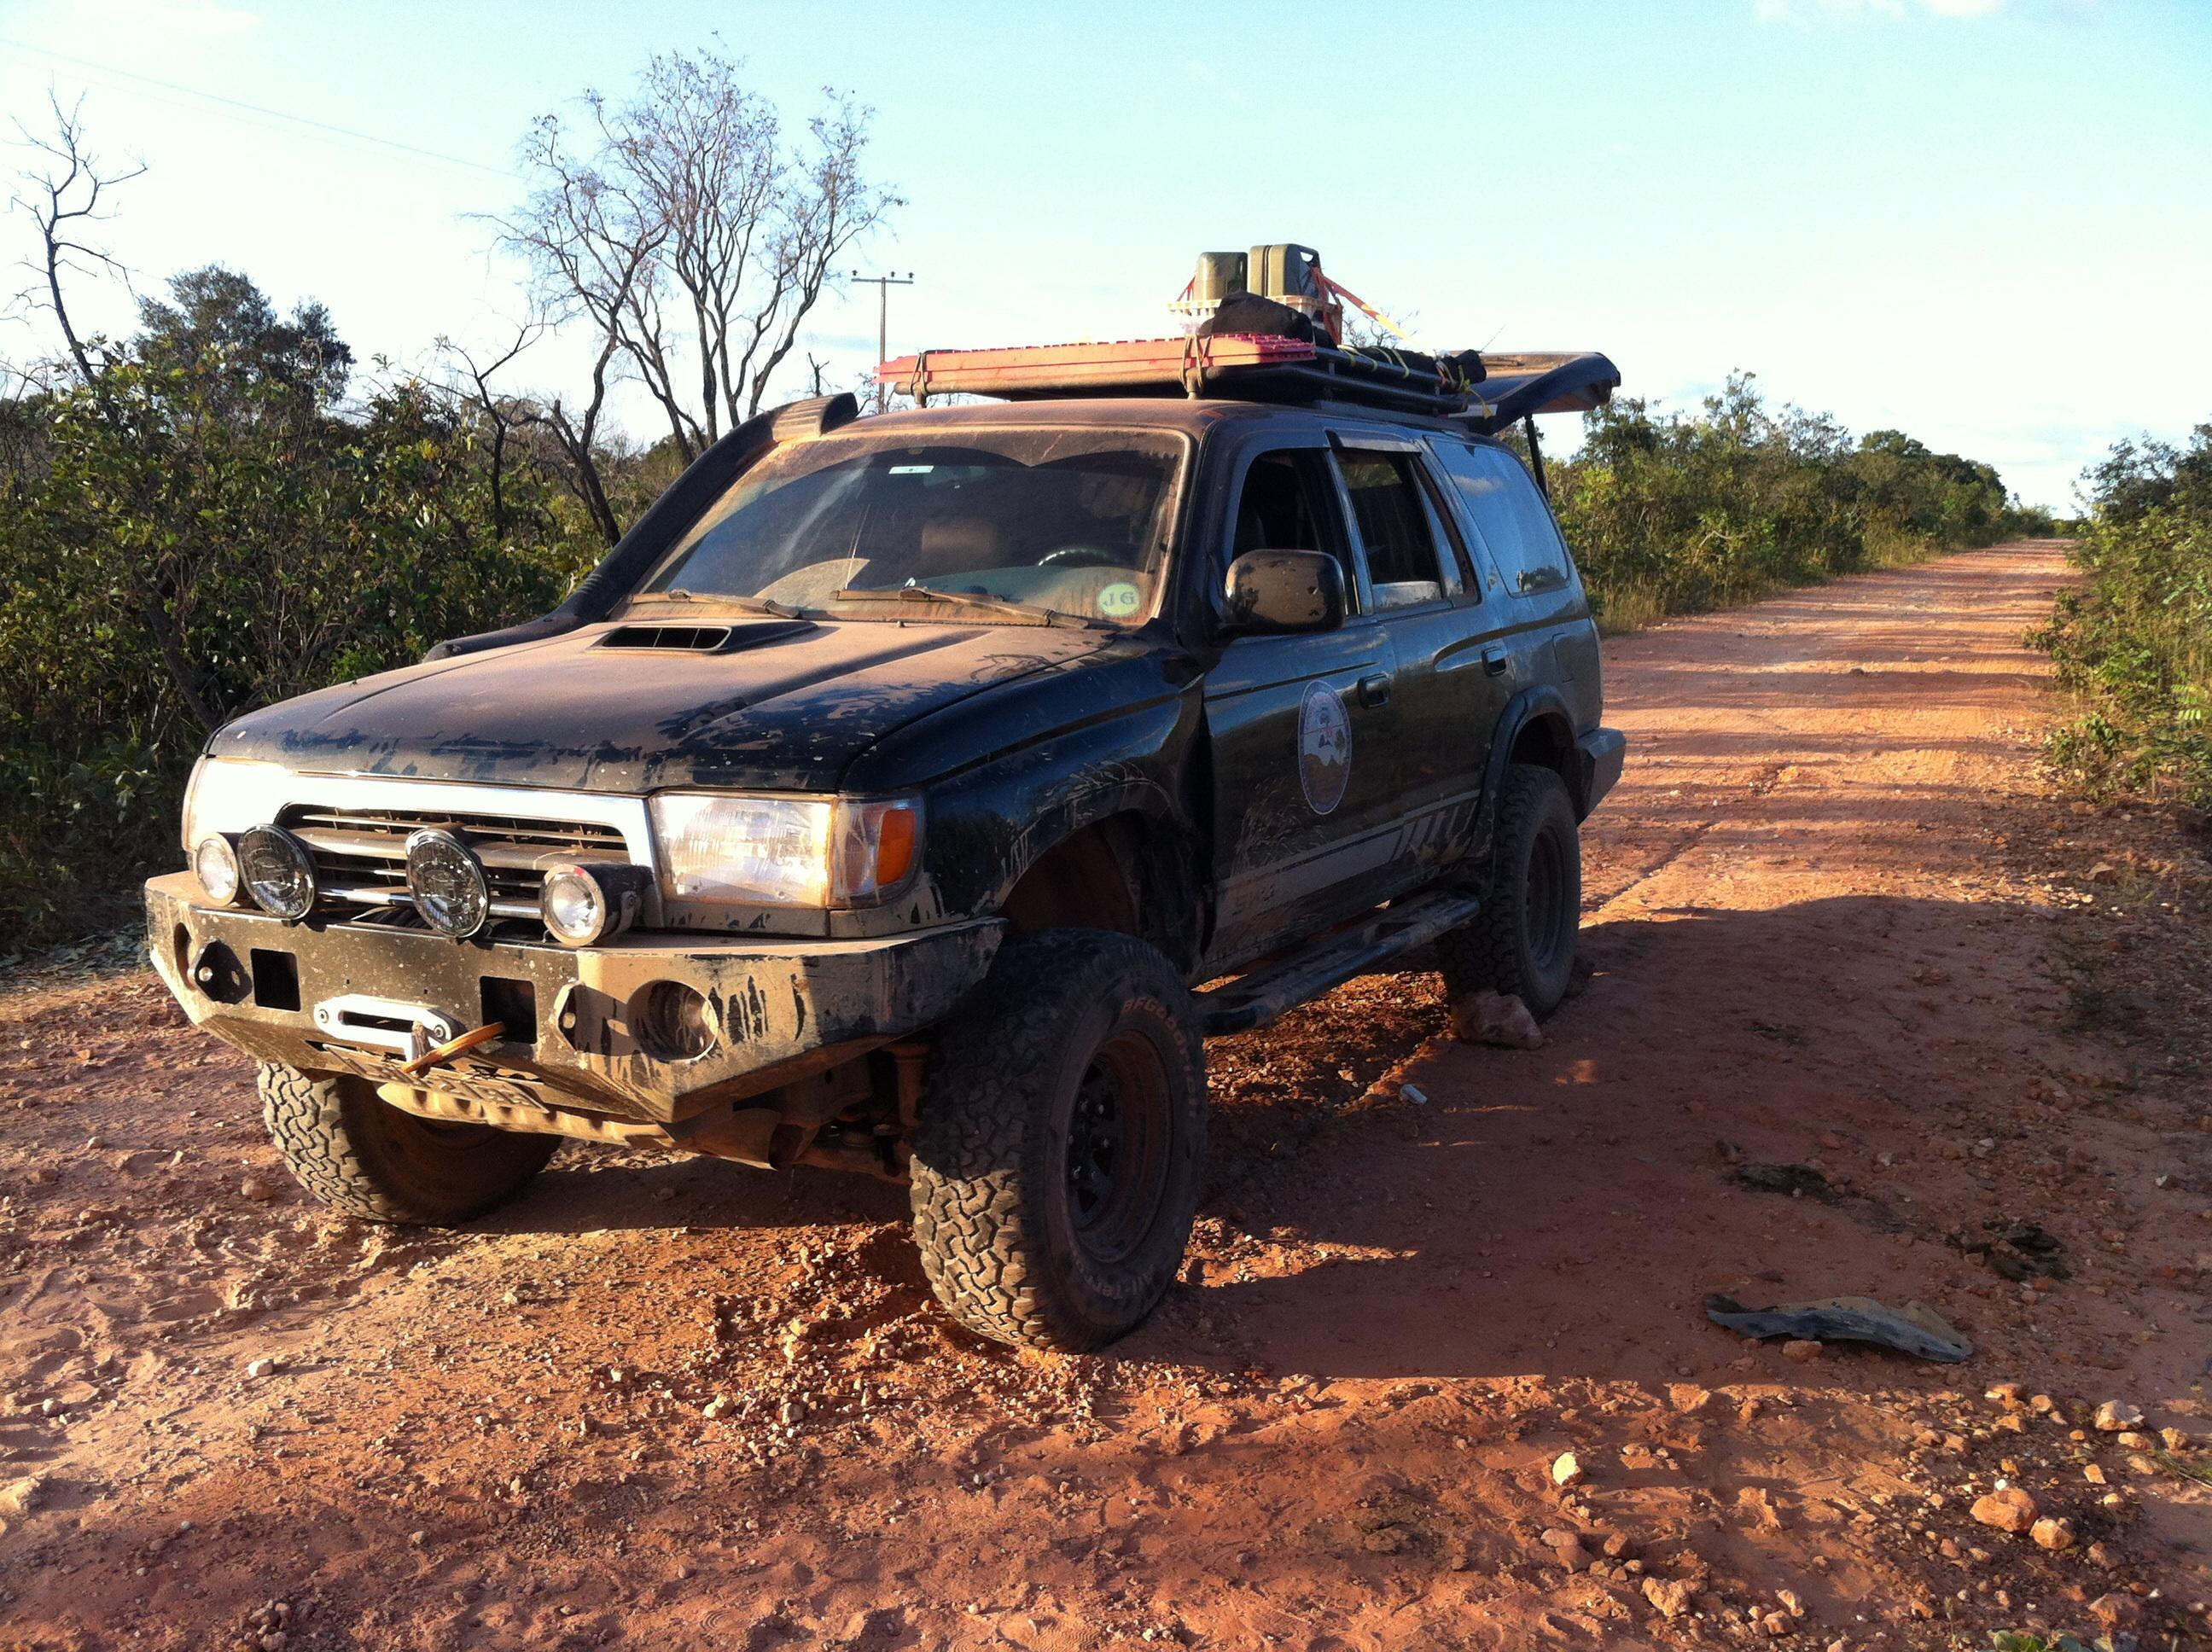 SW4/4Runner on The Trip.